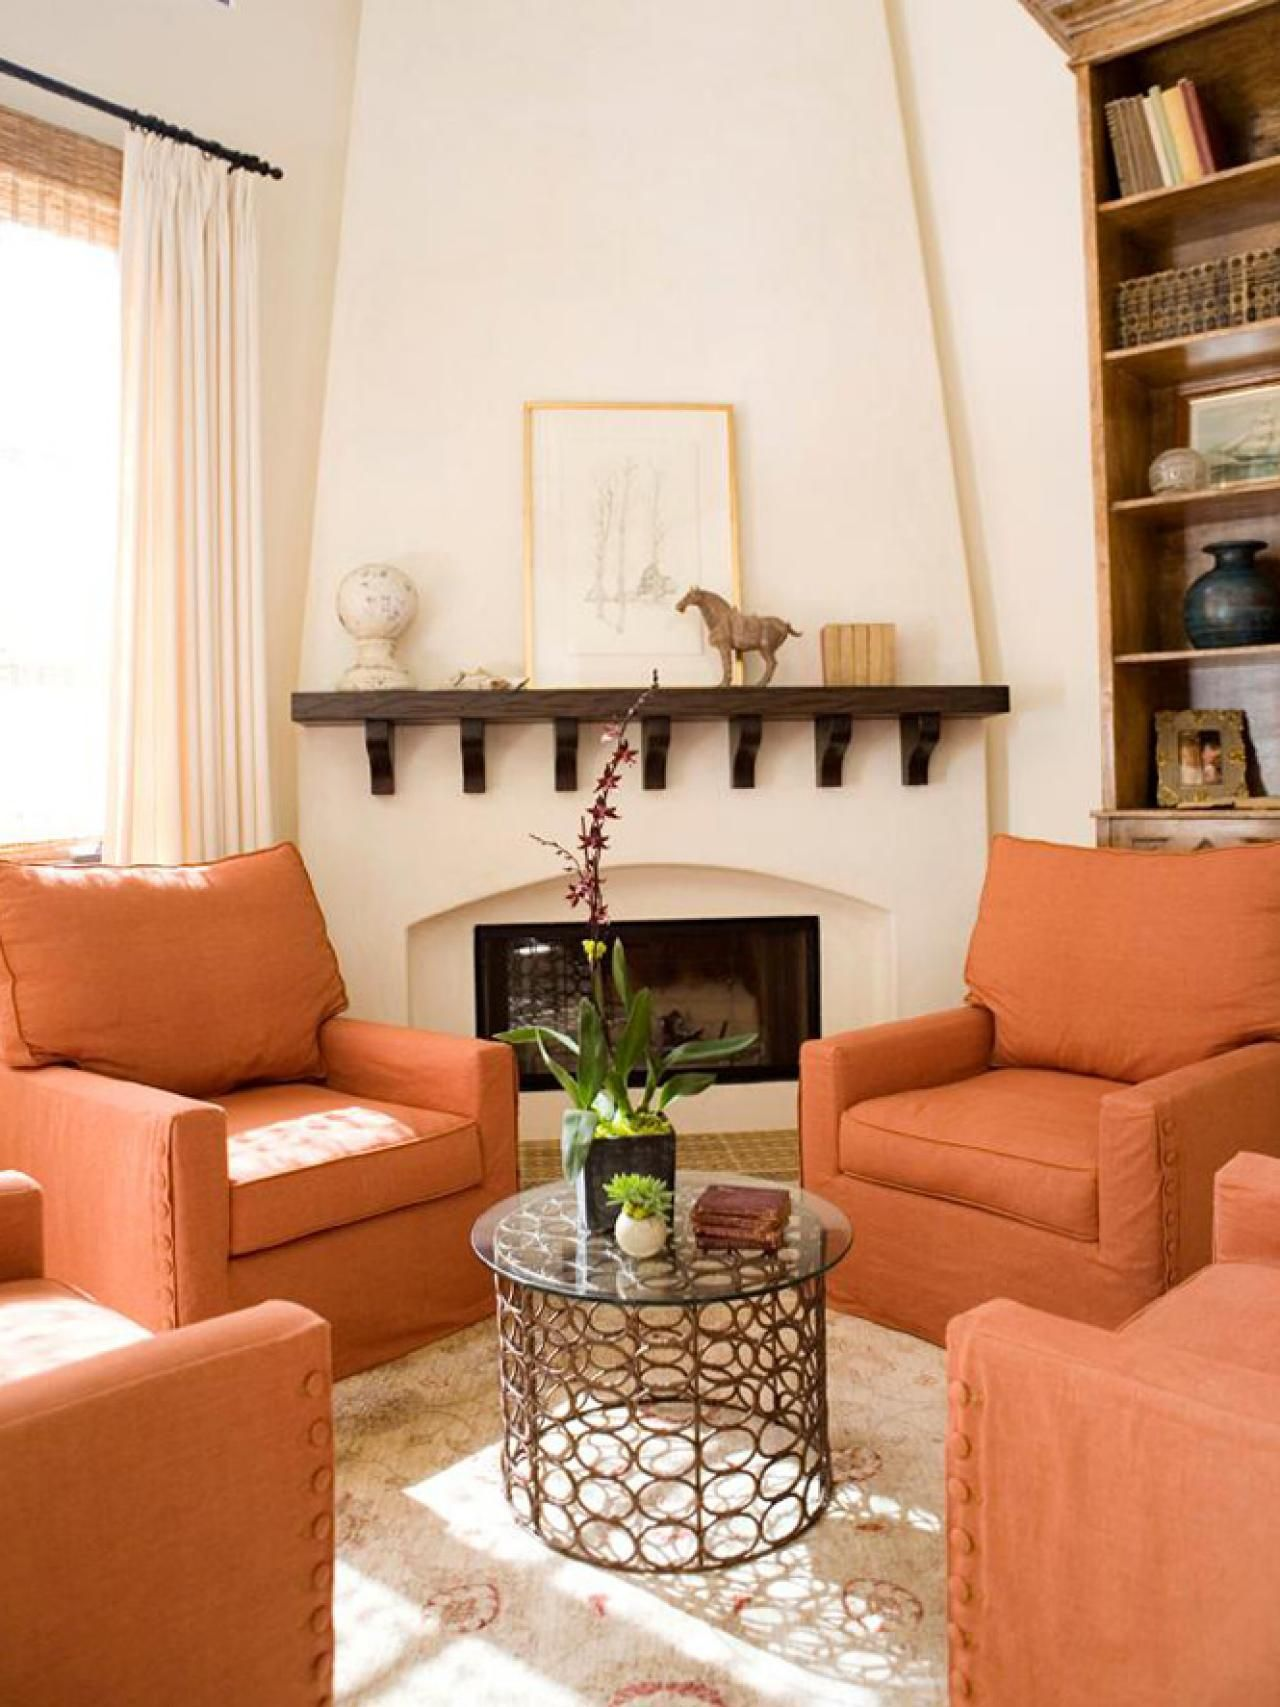 Nice In This Rustic, Natural Toned Living Room, Four Deep Carrot Orange  Armchairs Provide